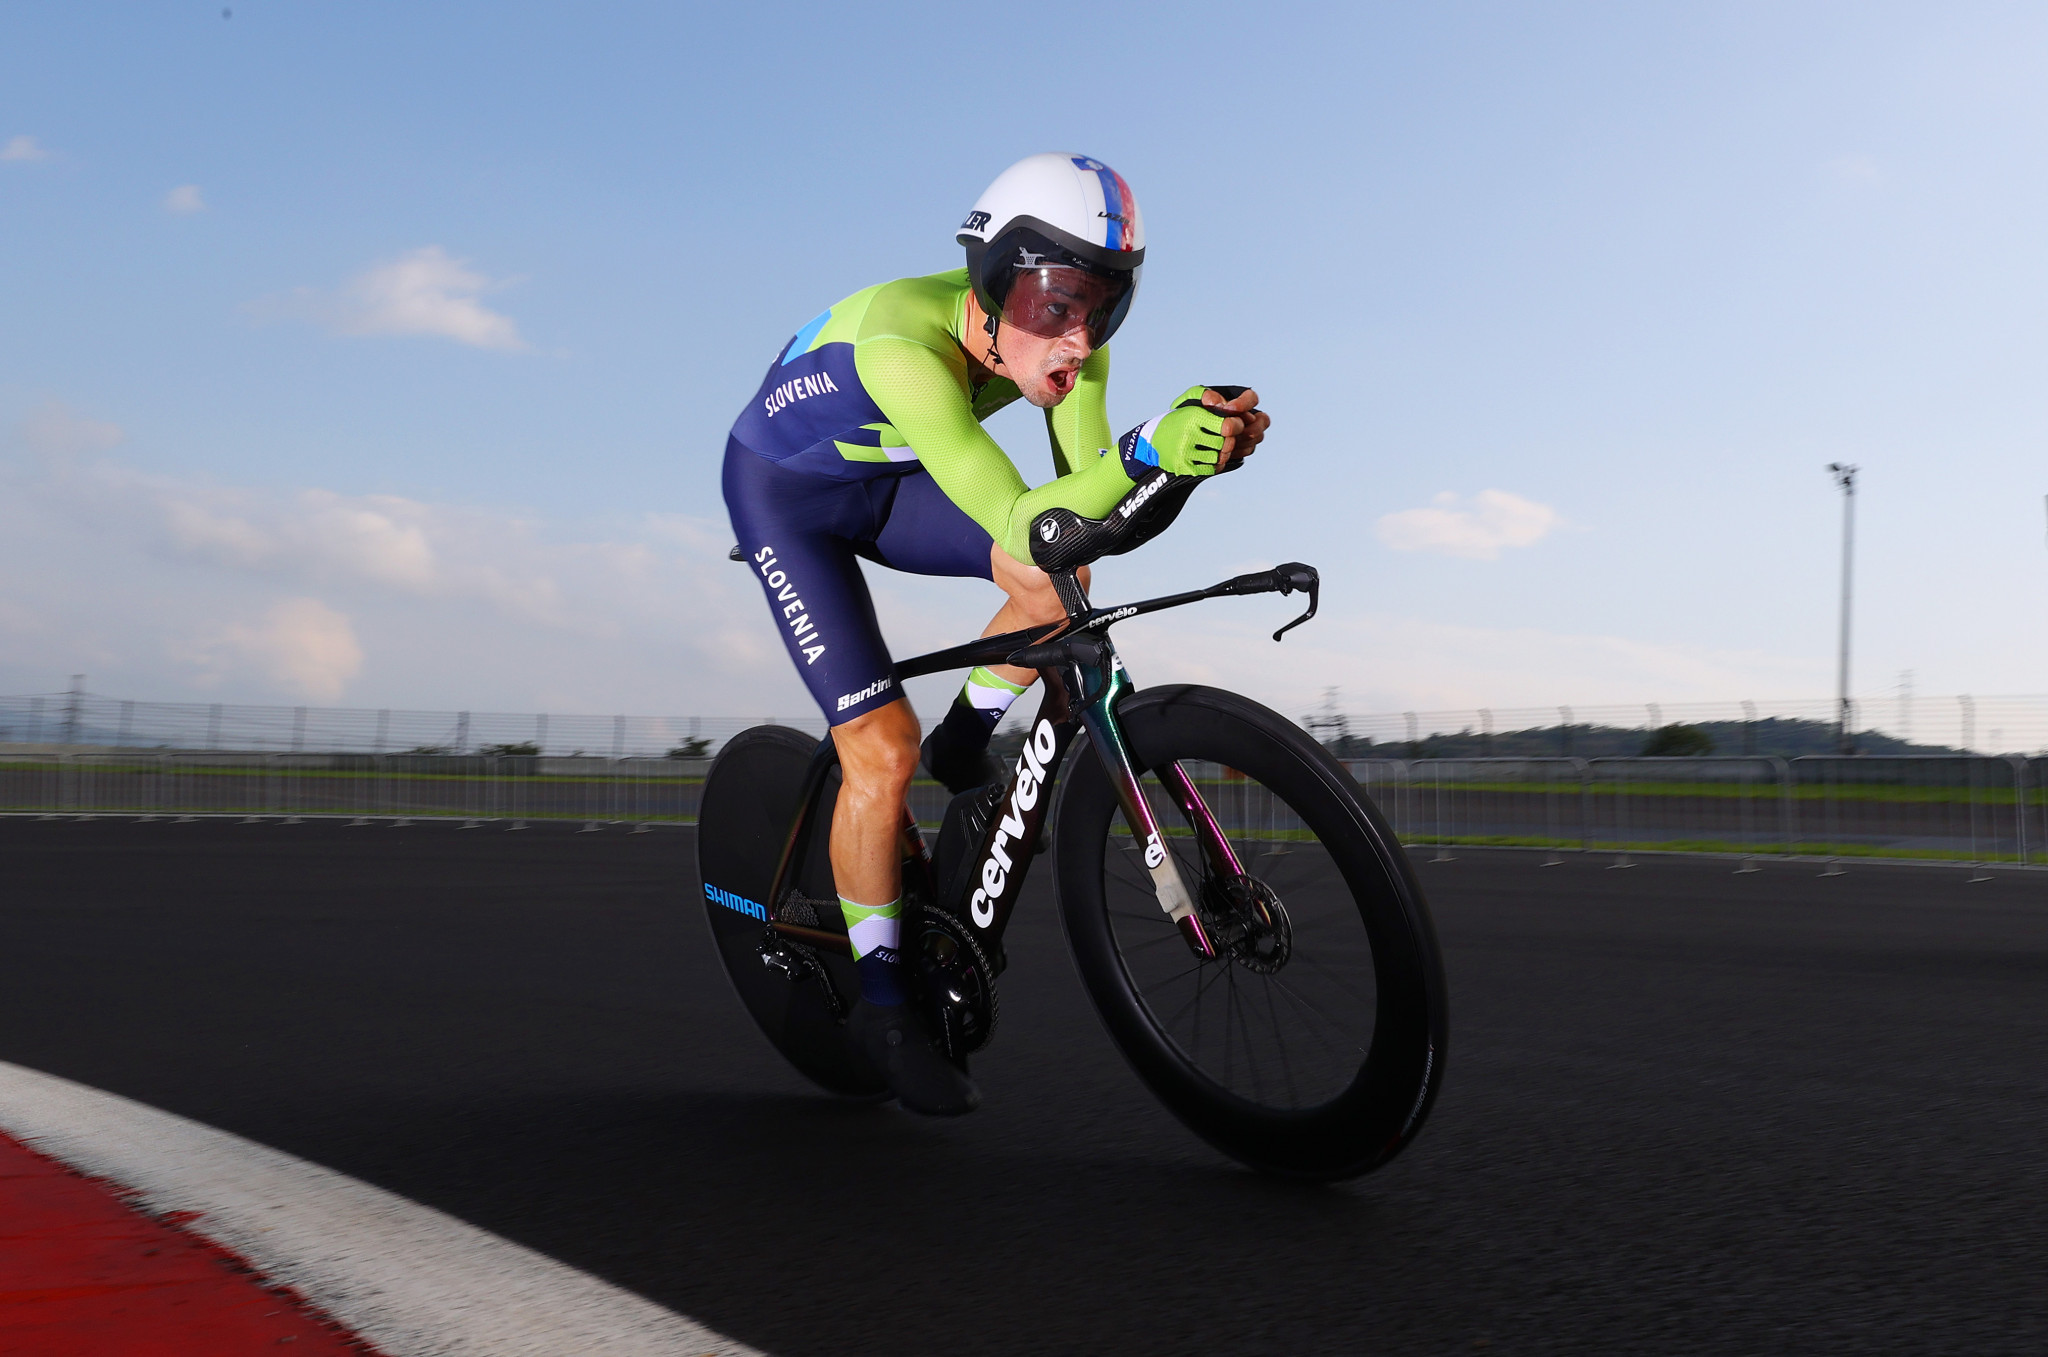 Roglič earns emphatic men's individual time trial victory at Tokyo 2020